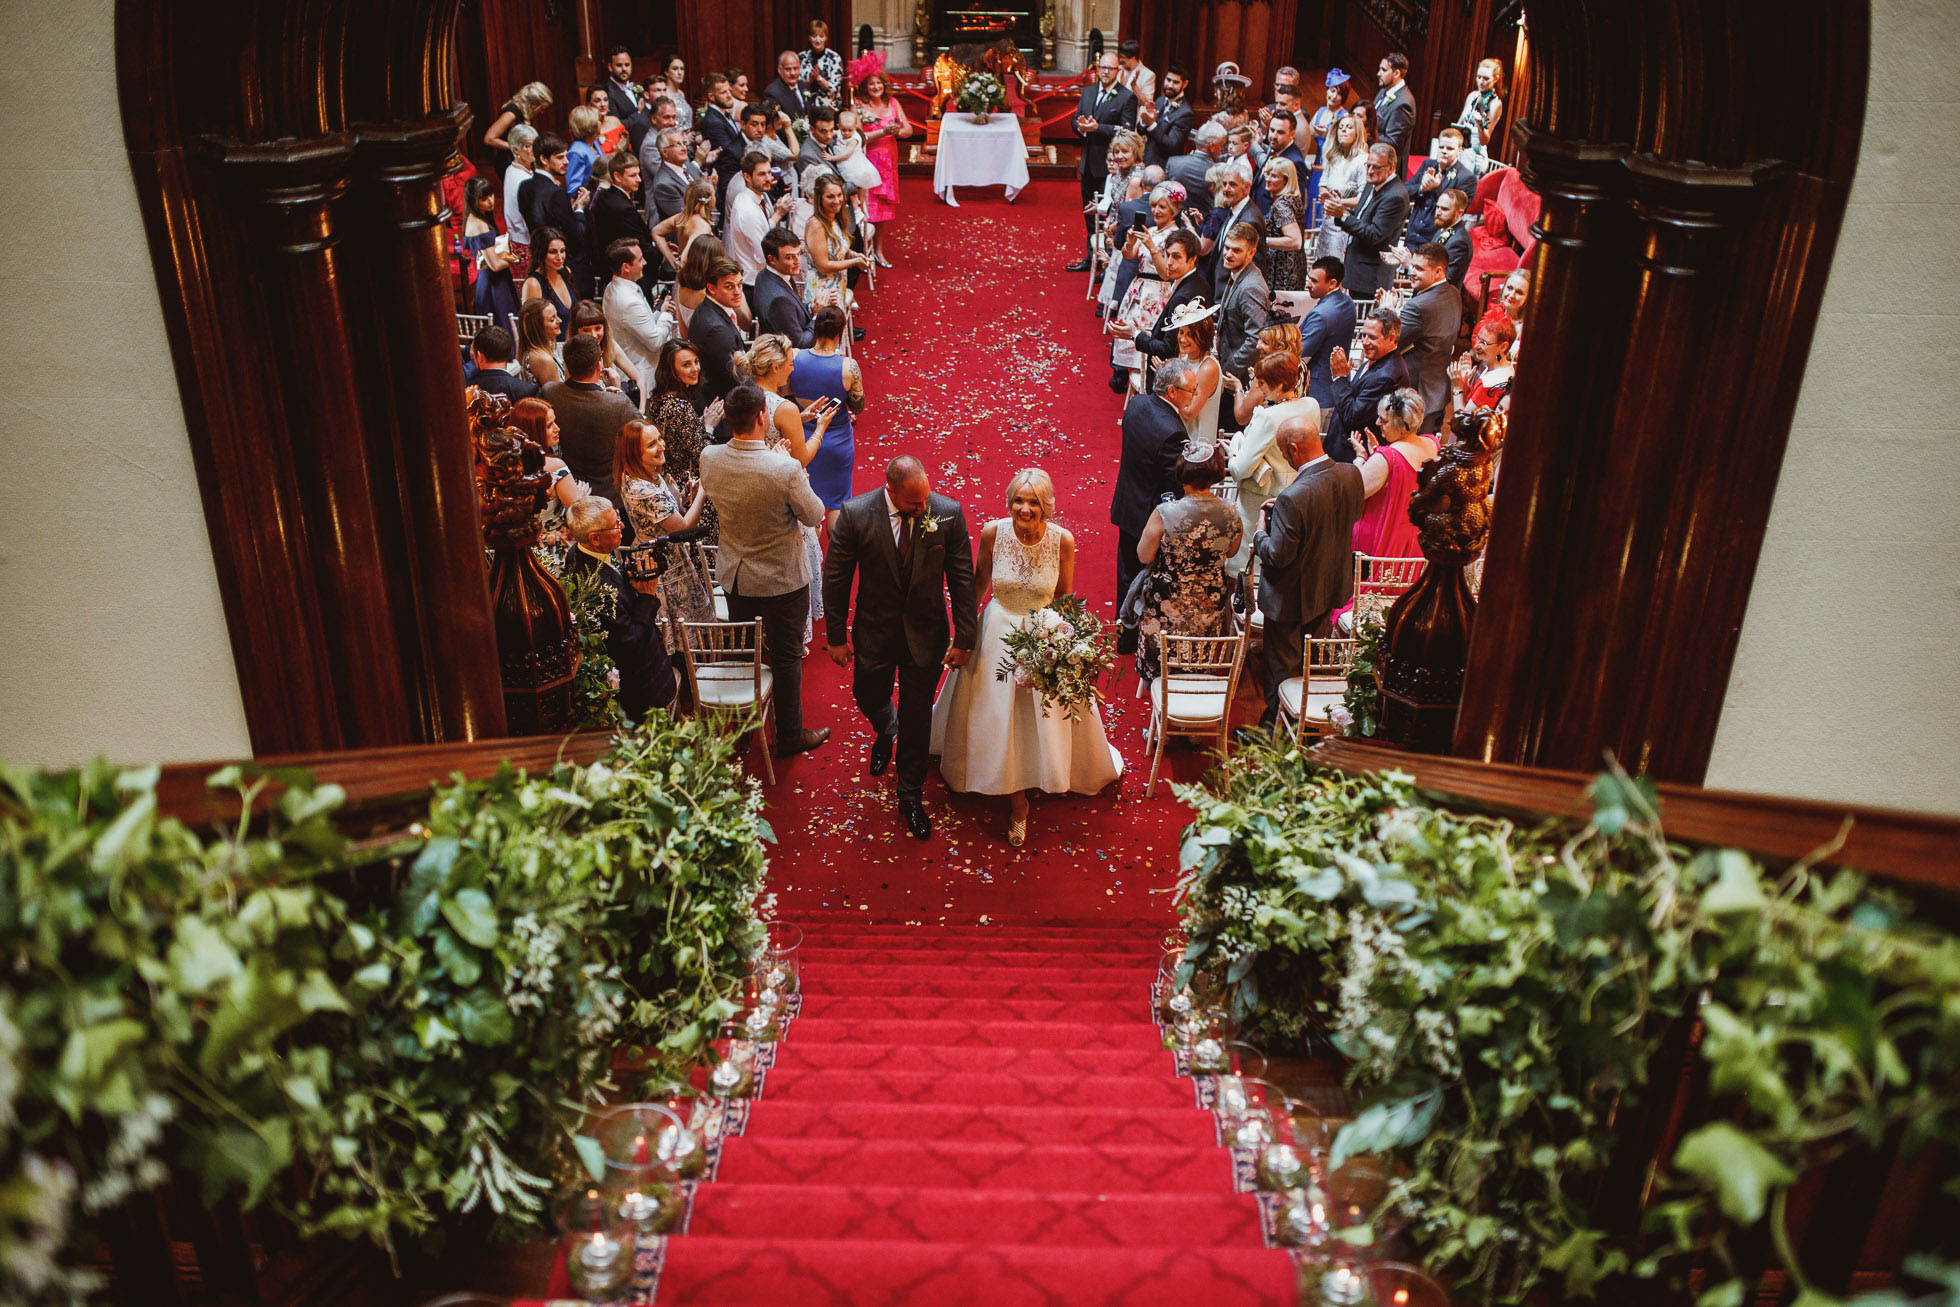 allerton_castle_wedding_photographer-52.jpg